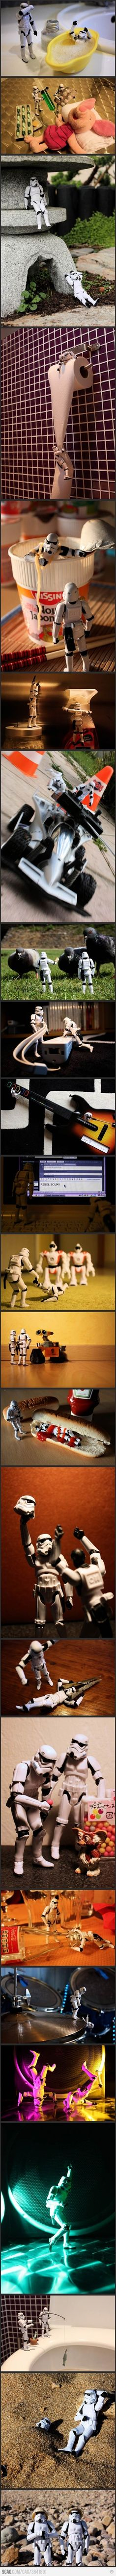 Stormtrooper Moments of life